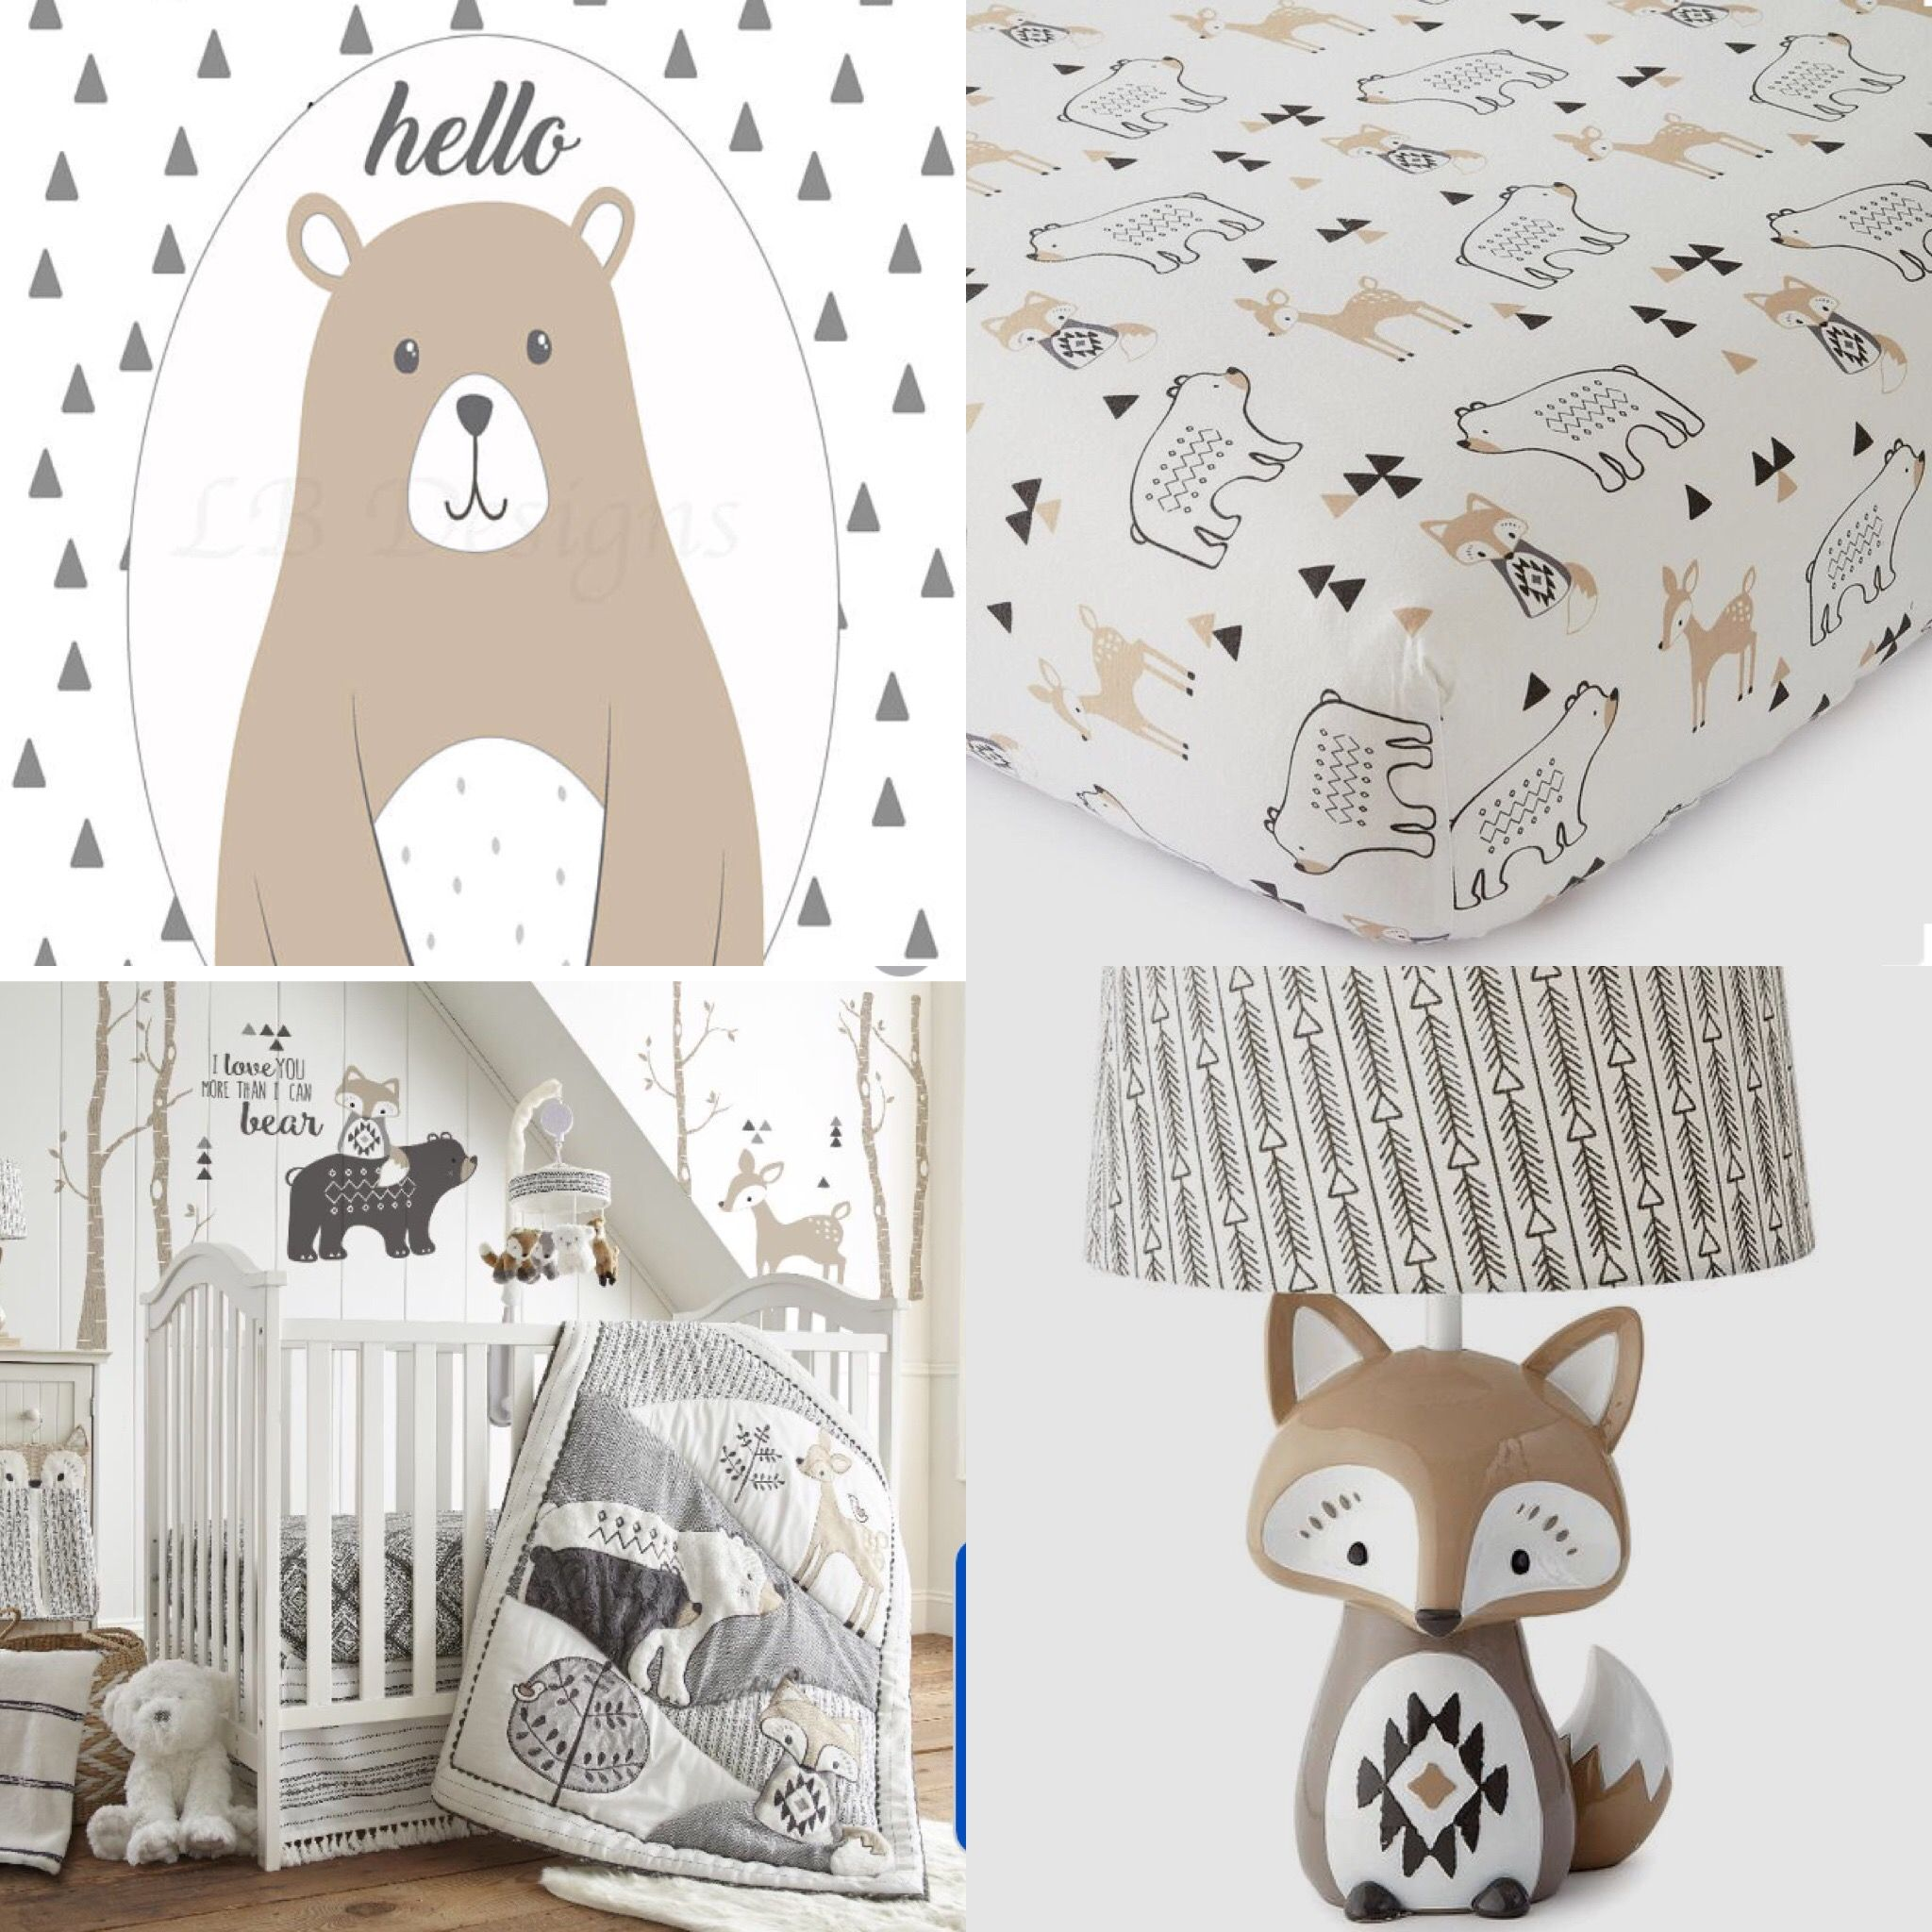 Levtex Baby Bailey Nursery Decor Woodland Ideas Gender Neutral Modern